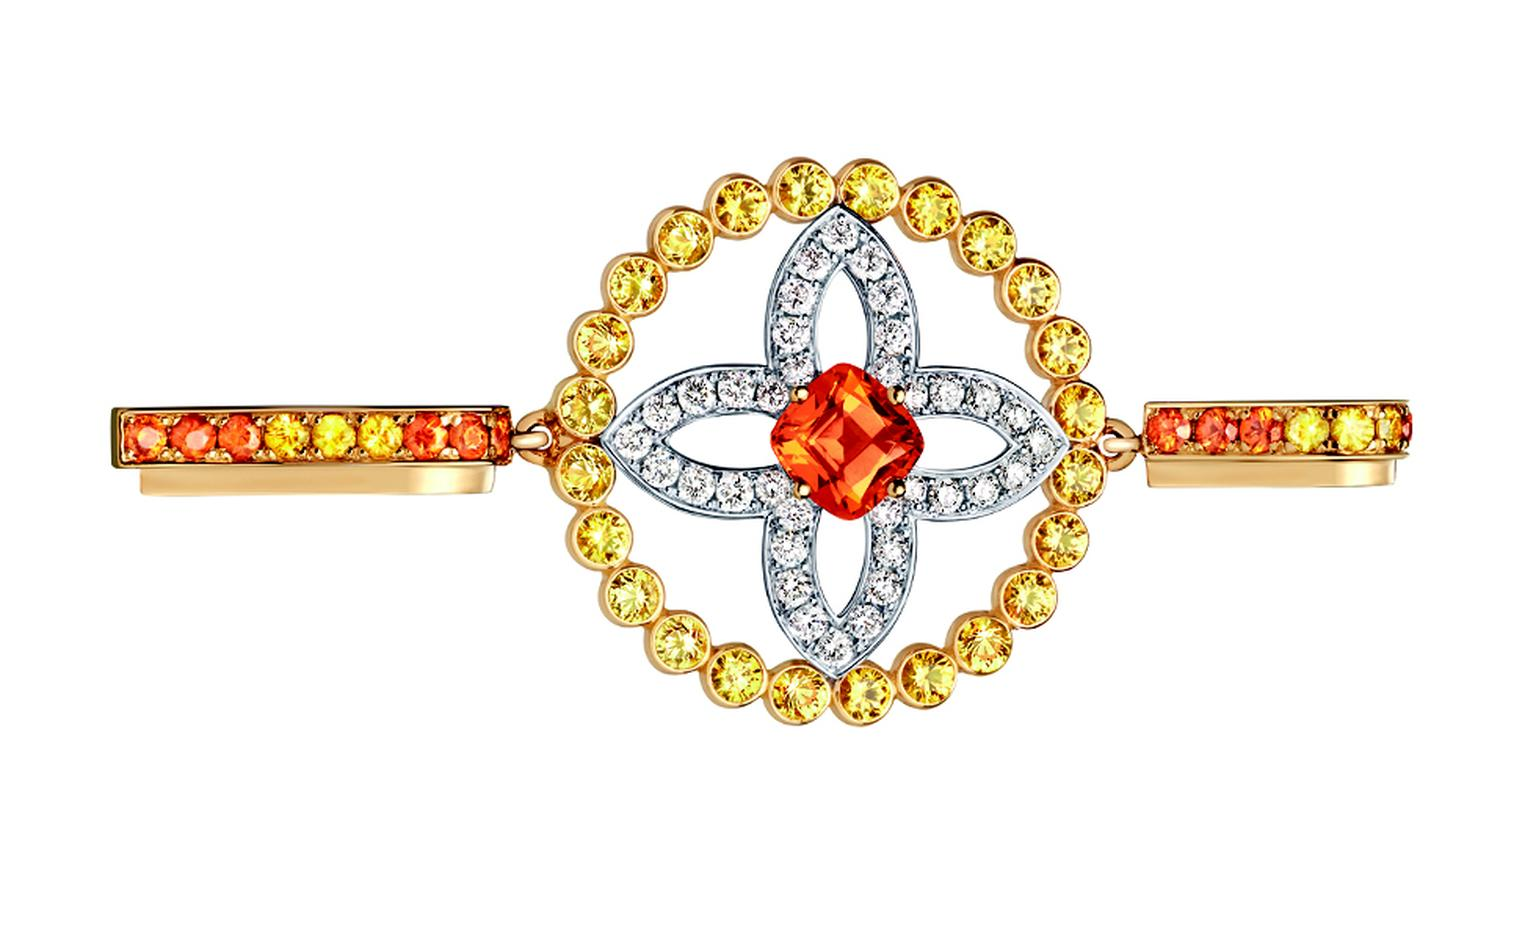 LOUIS VUITTON, Large Ornament Tribal Pendent, yellow gold, yellow sapphires, spessartite garnets and diamonds. £8,400